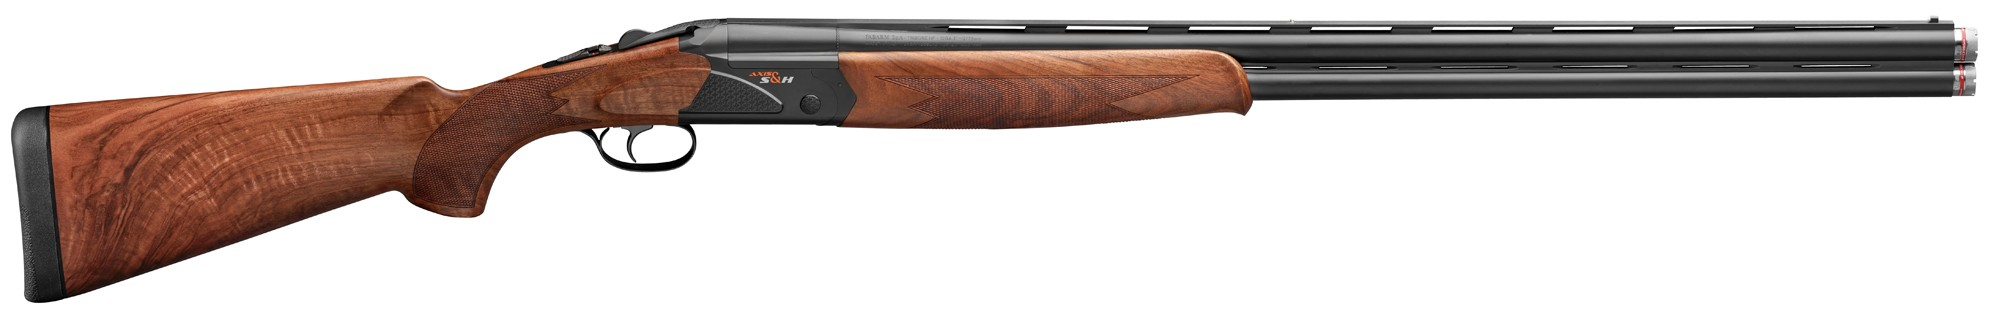 FA5050 Superposé AXIS Sport & Huntin S&H crosse fixe. - FA5050